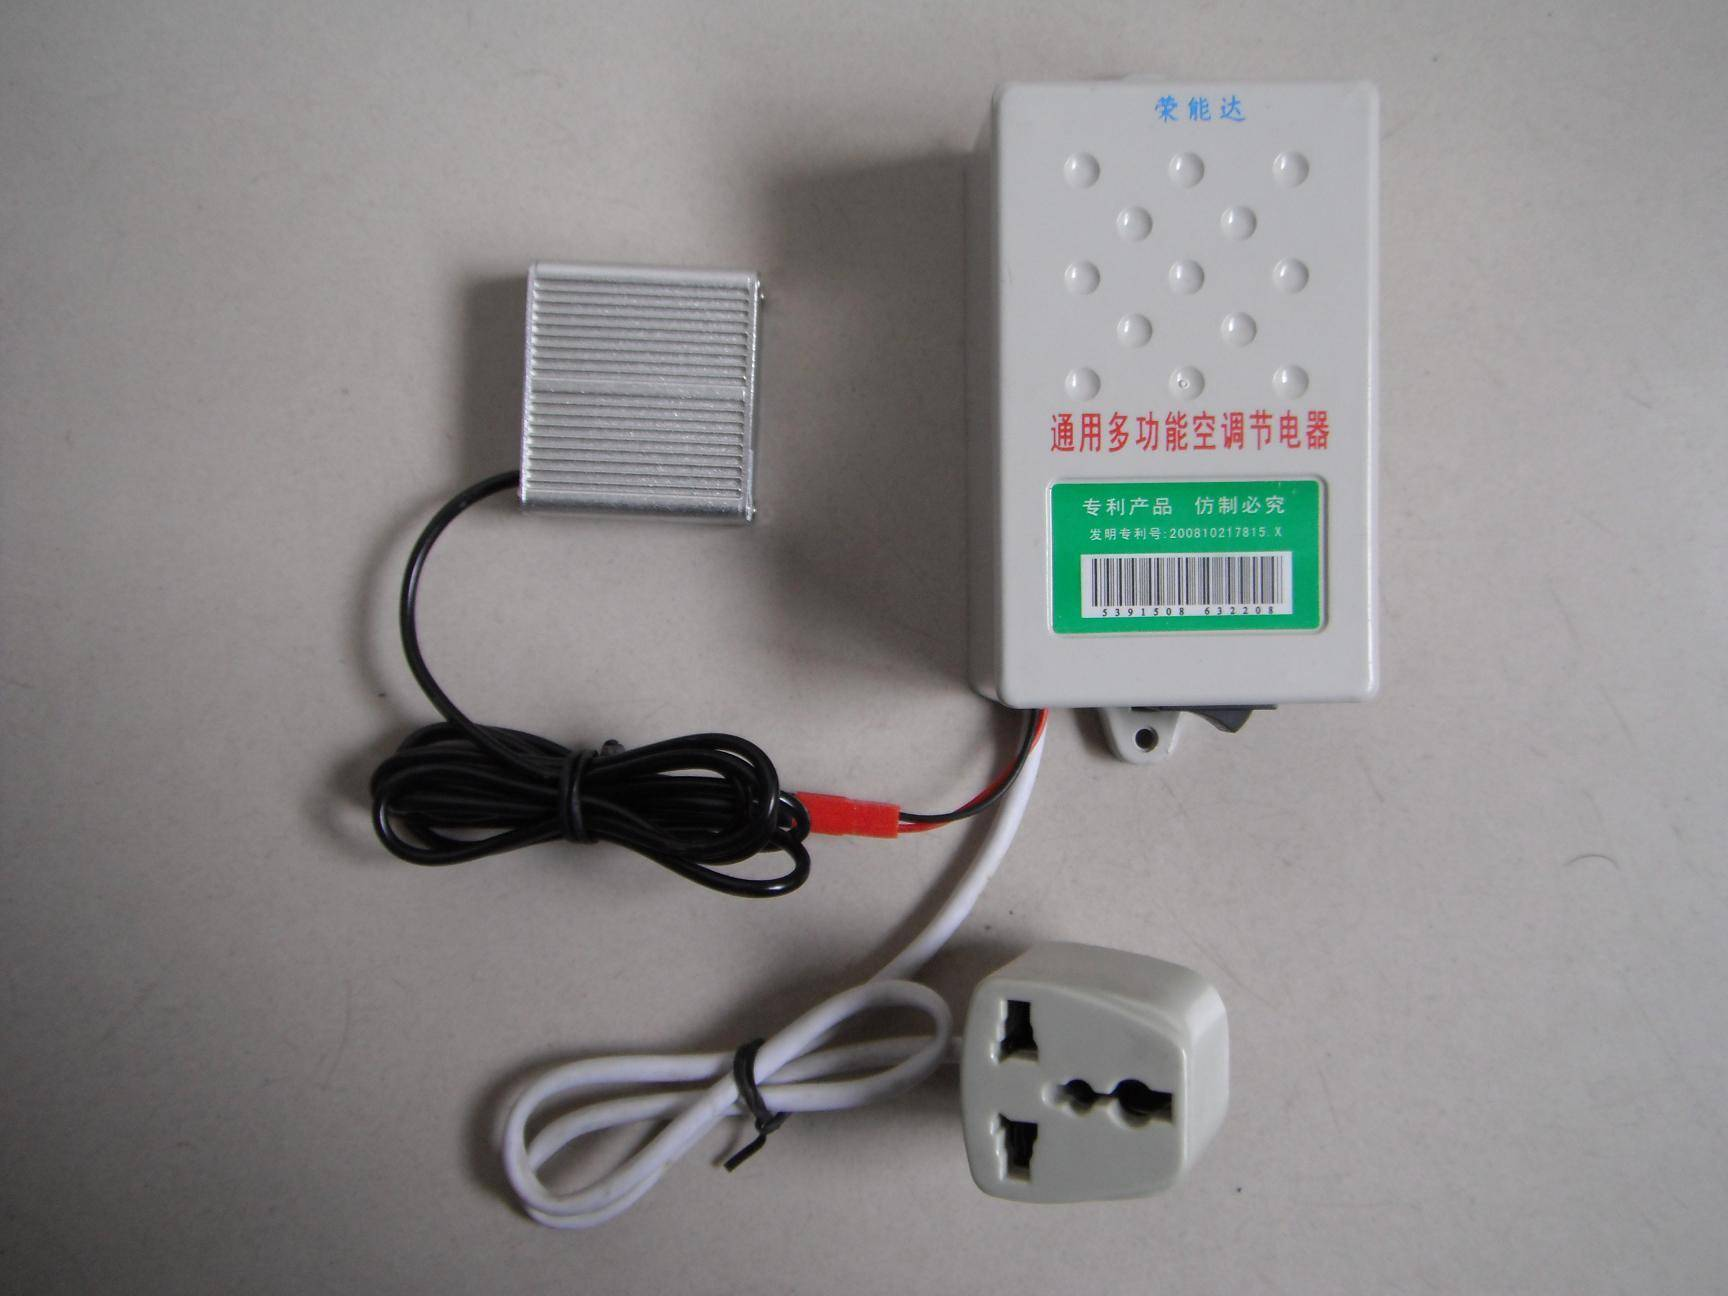 Newest power saver of 2~3P single phase air conditioners